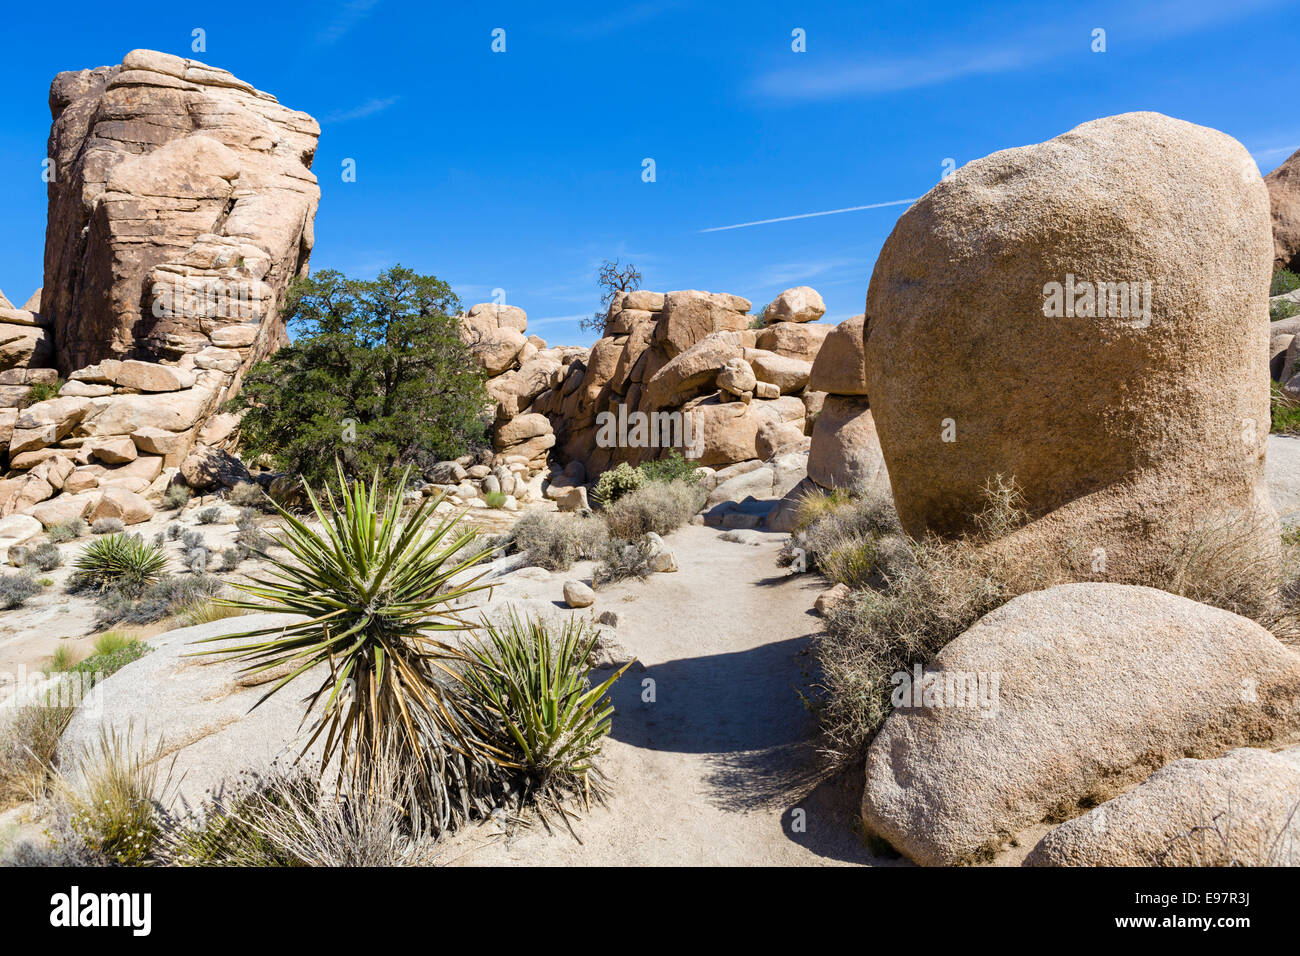 Trail in Hidden Valley, a former cattle rustler hide-out, Joshua Tree National Park, San Bernadino County, California, - Stock Image